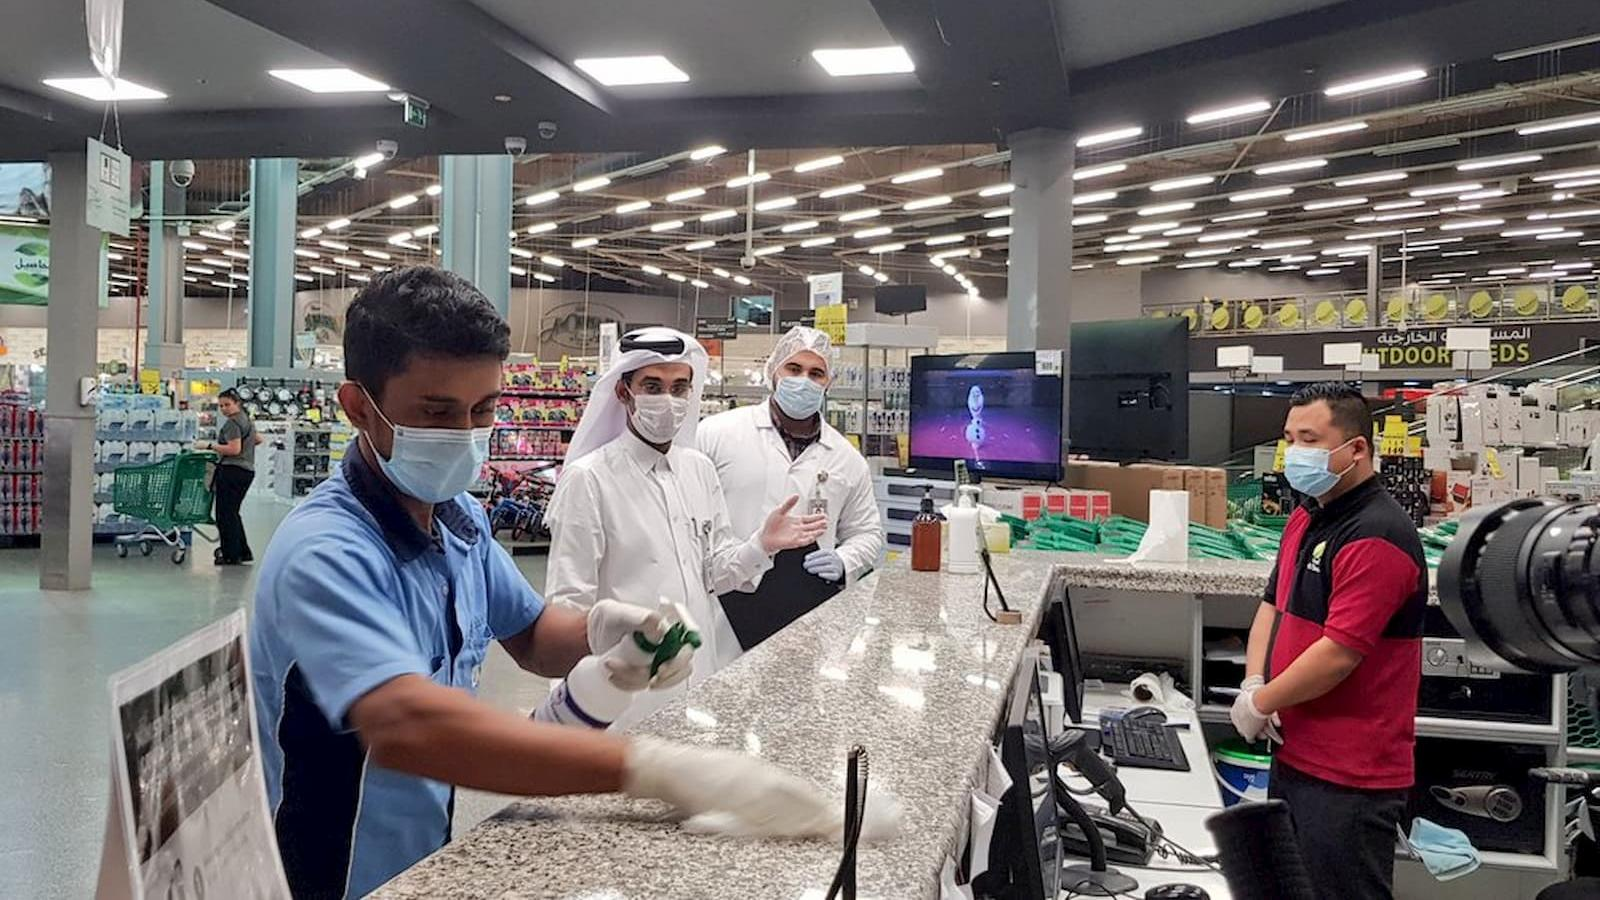 MME intensifies efforts to ensure public safety with cleanliness drive, inspections at food outlets